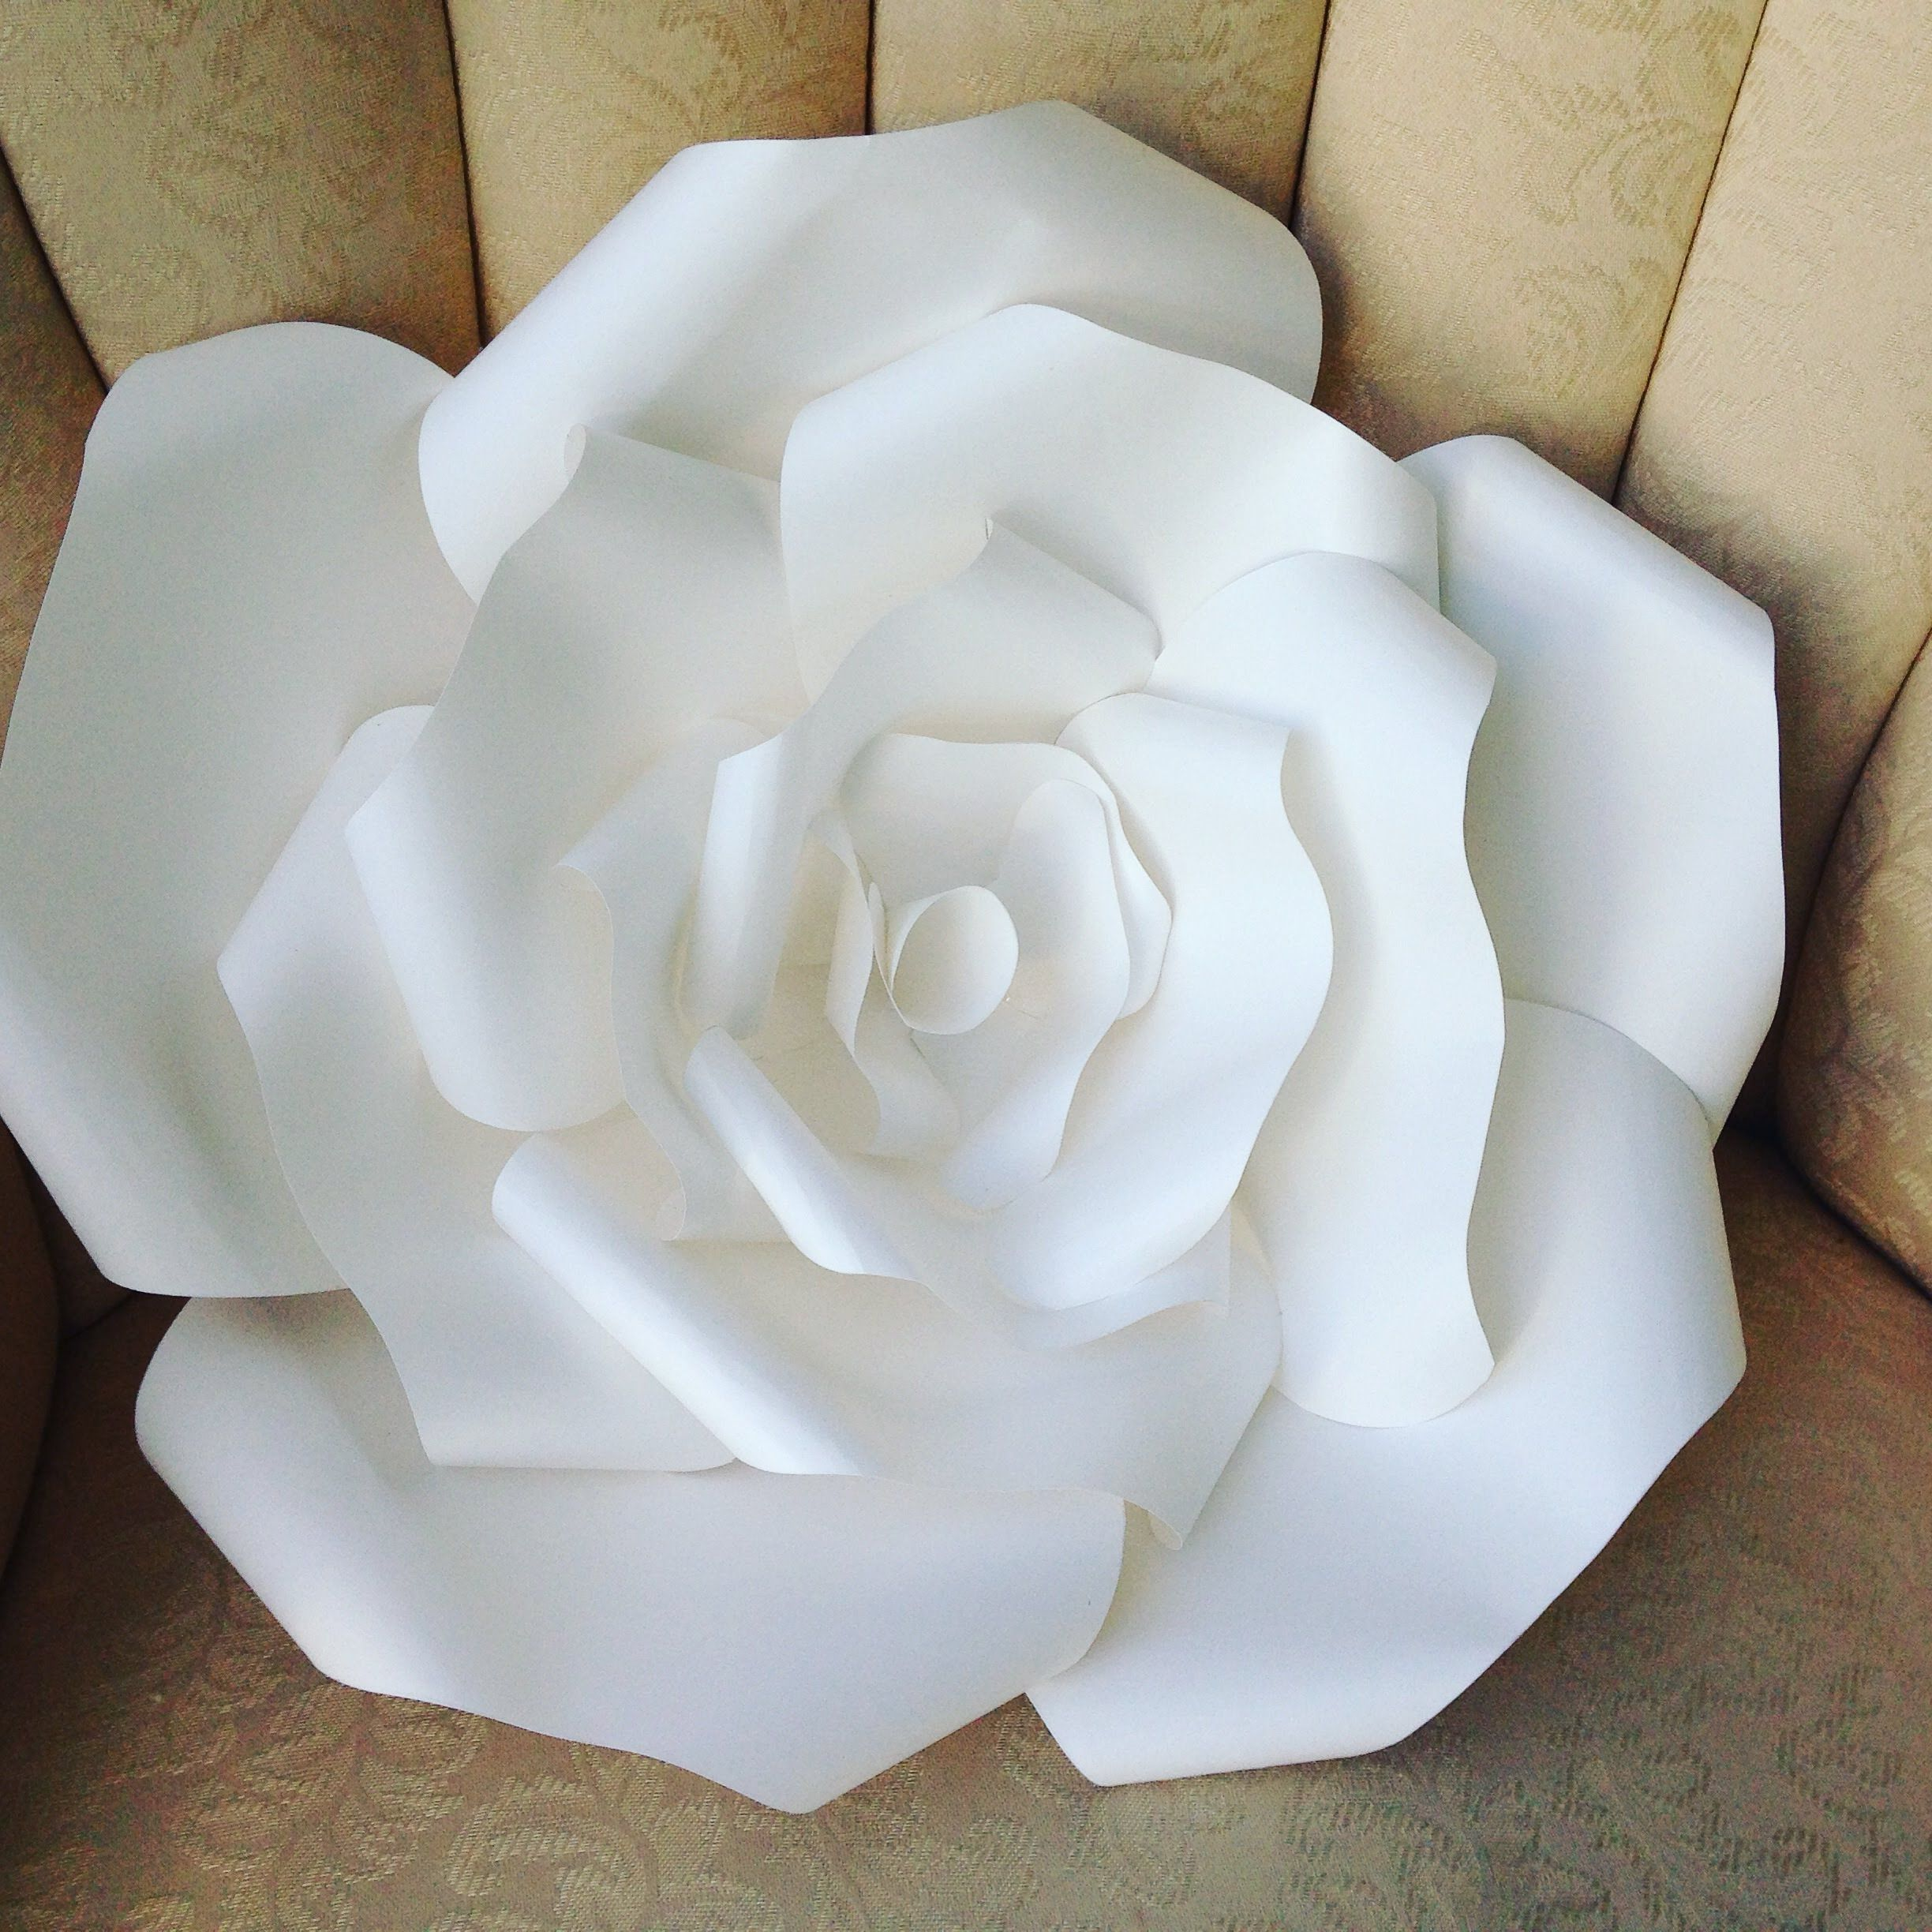 Diy Large Paper Rose Classy Party Pinterest Extensions